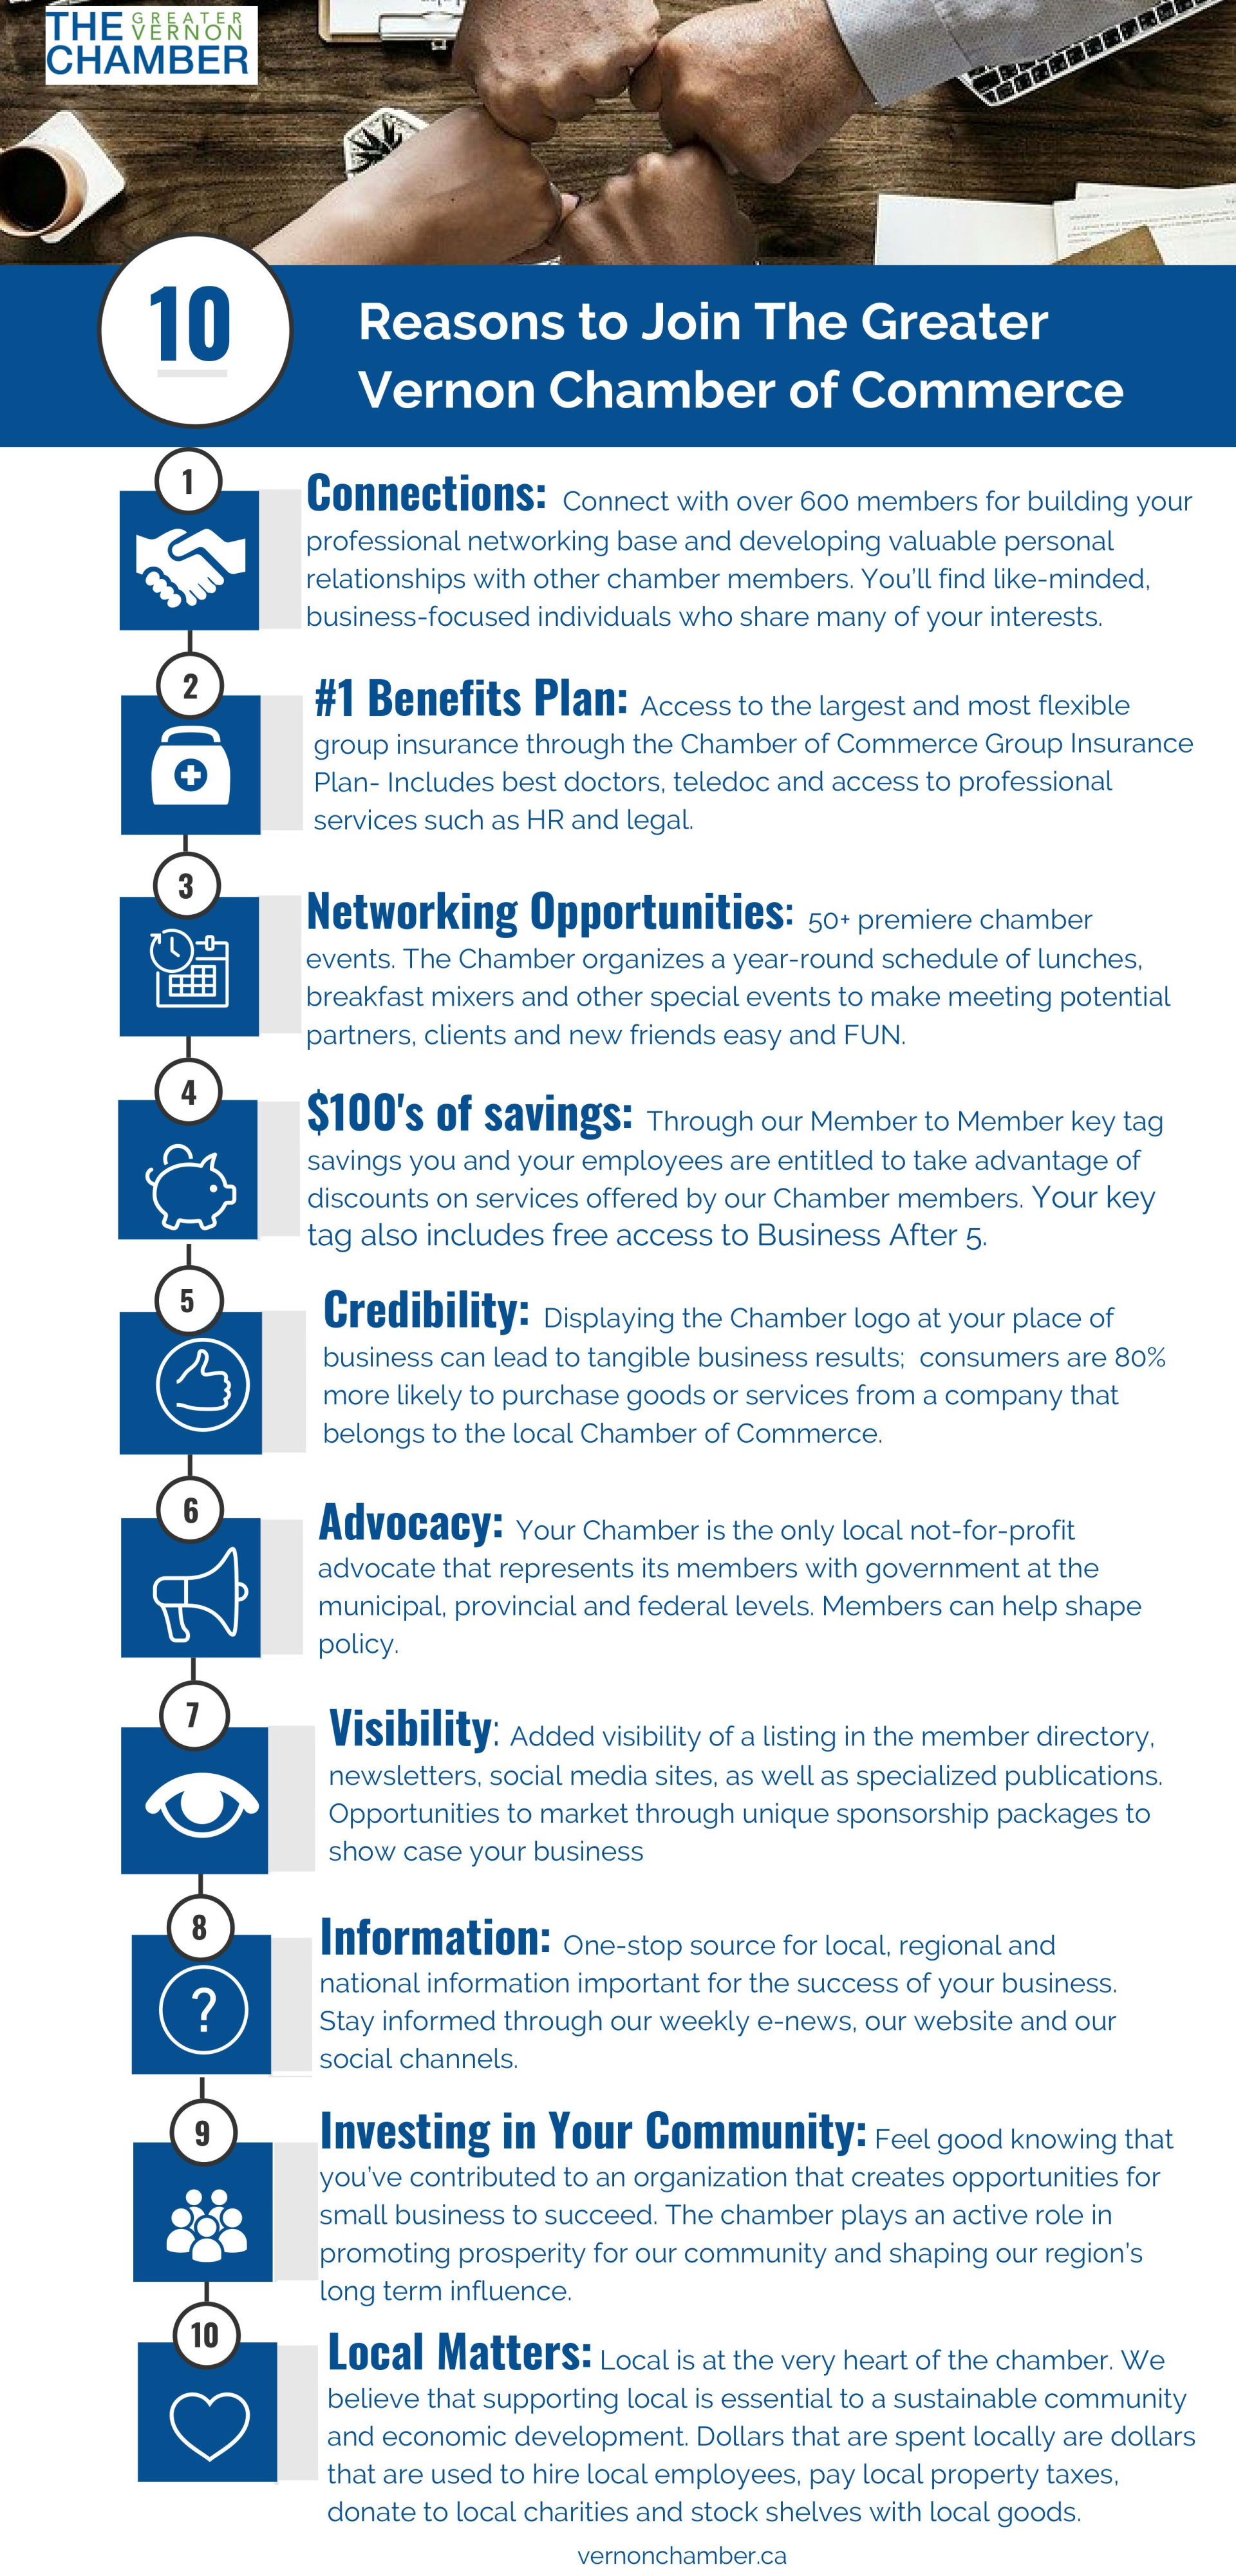 10 Reasons to Join the Chamber